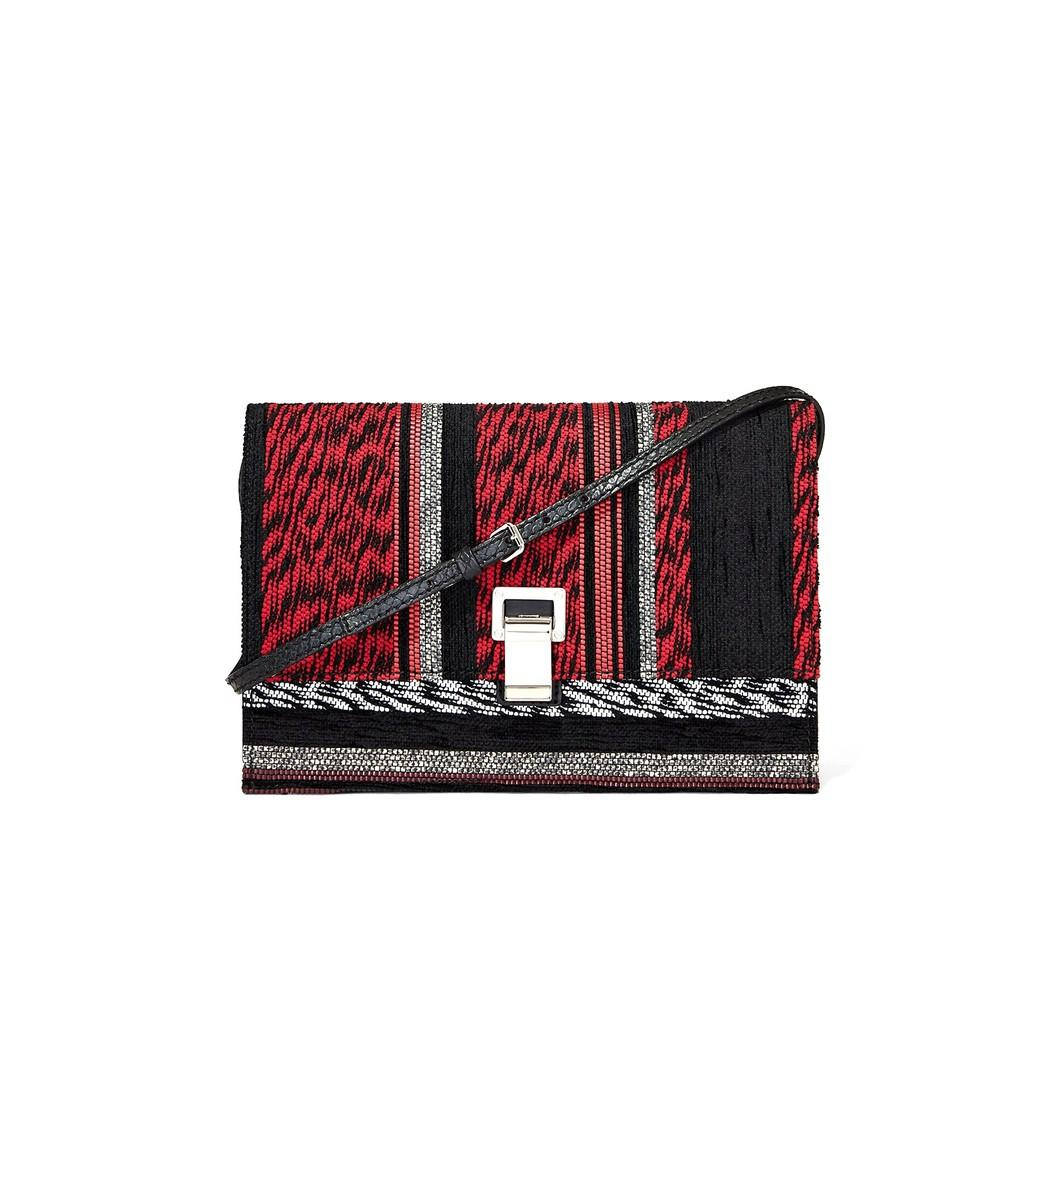 Proenza Schouler Red/black Mix Strap Small Lunch Bag